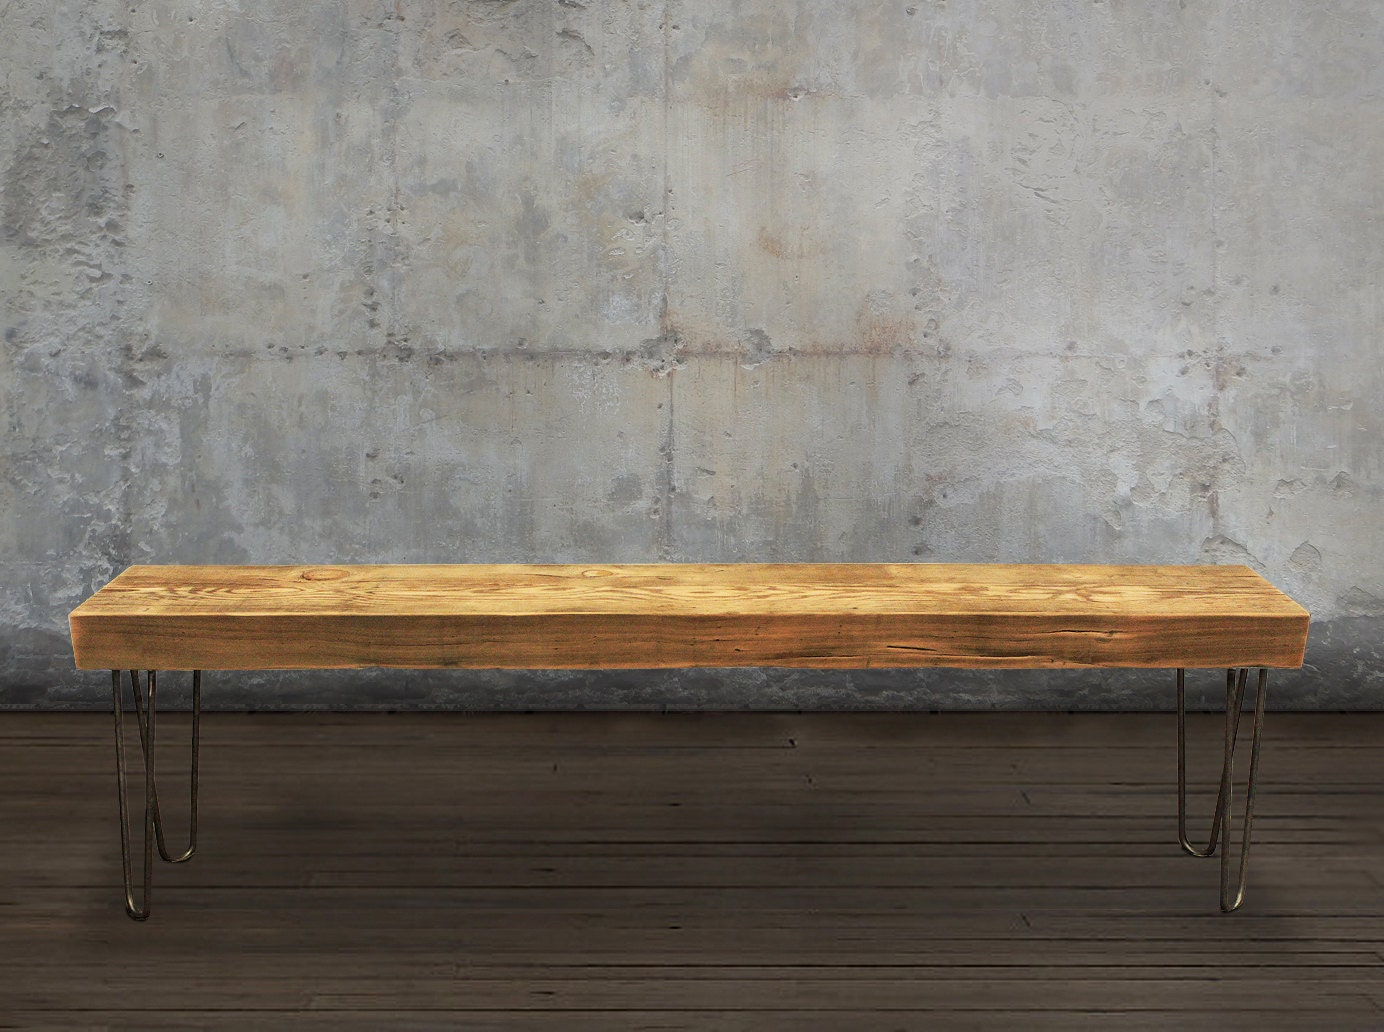 wood beam bench 28 images best 25 salvaged wood ideas